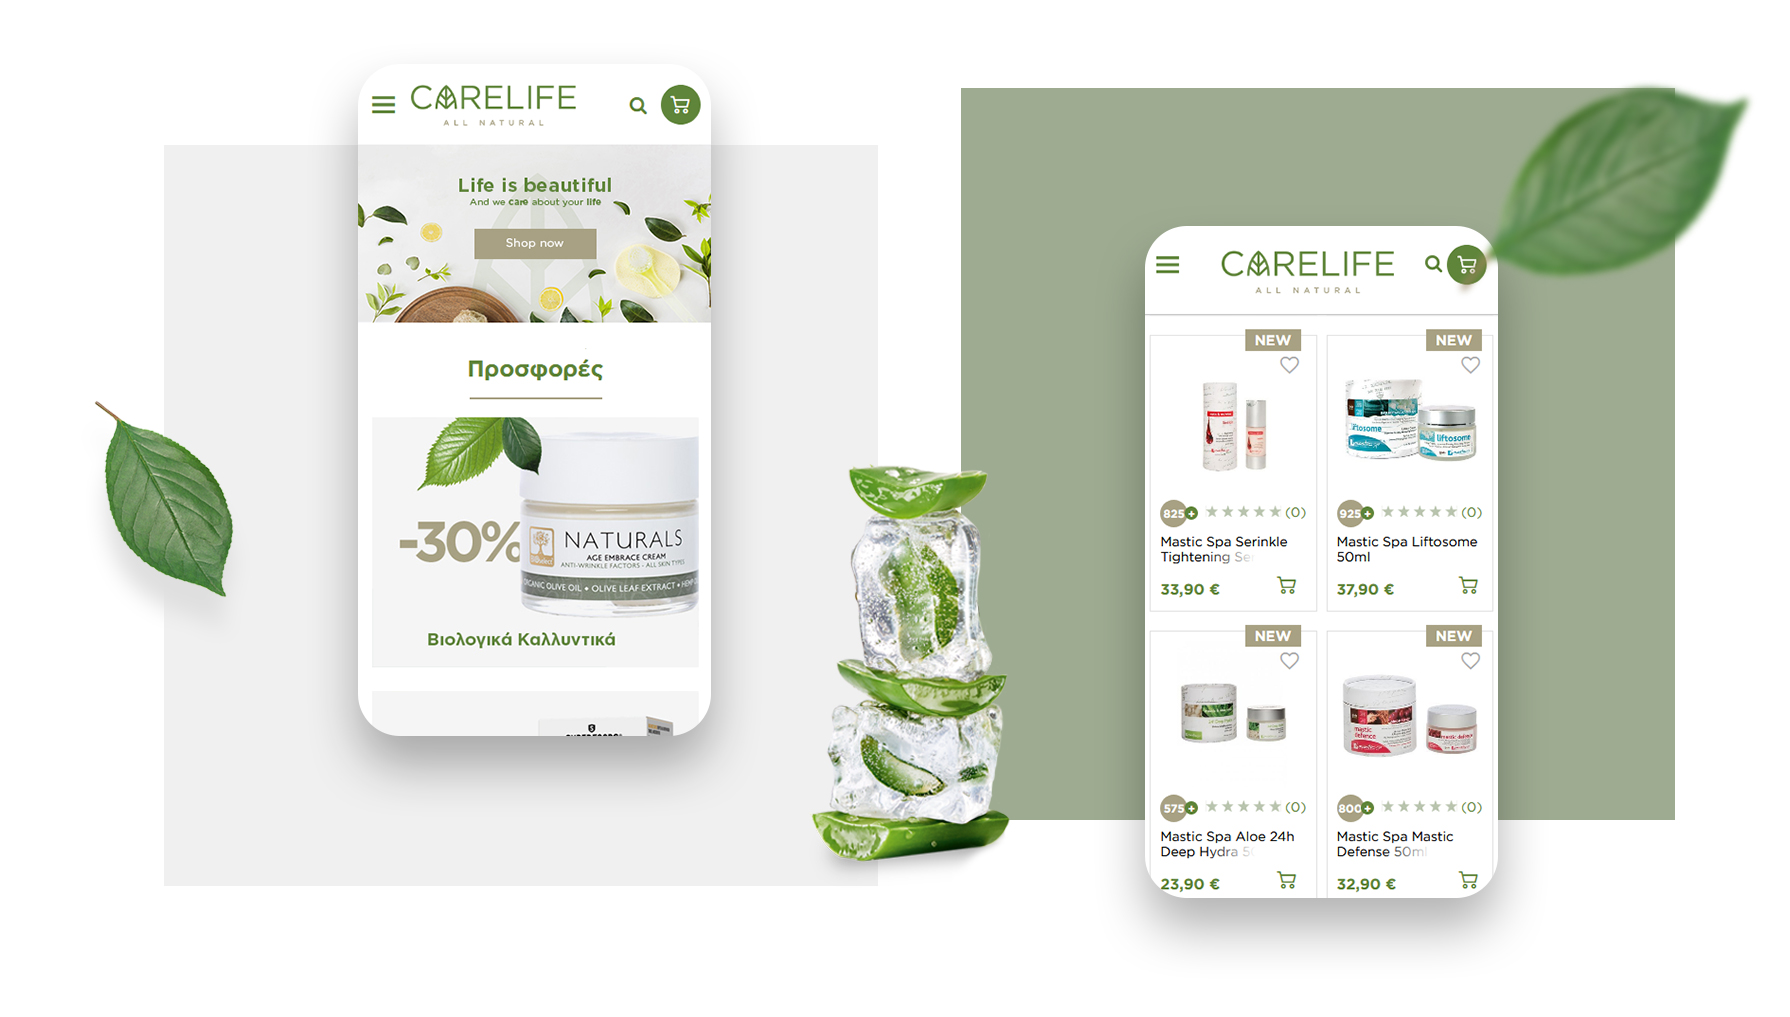 Carelife eshop - Mobile Version